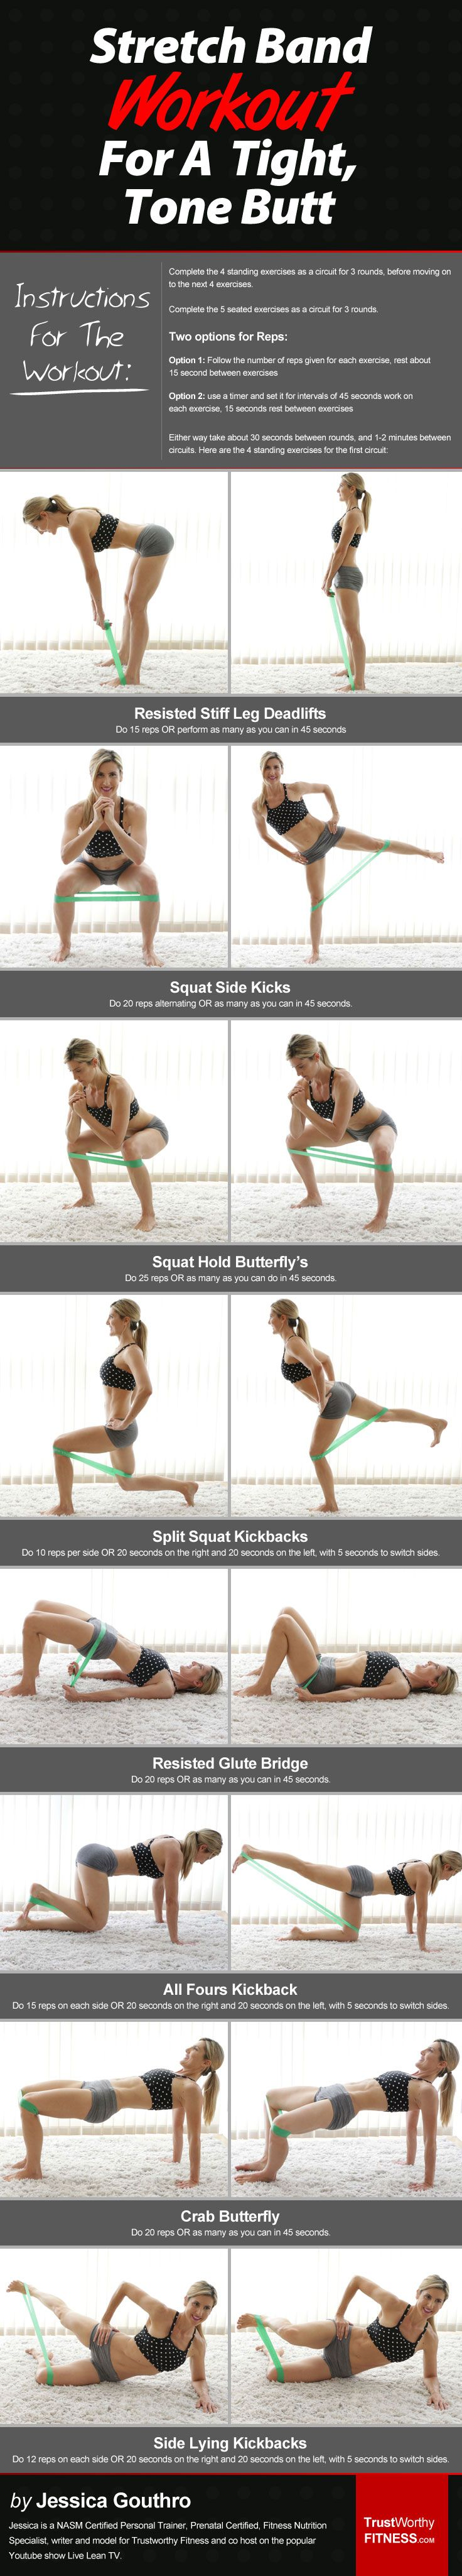 In this step by step workout discover how to get a beach ready booty without going to the gym using Stretch Bands. This workout can also be done without them too. http://trustworthyfitness.com/how-to-use-stretch-bands-tone-your-butt/